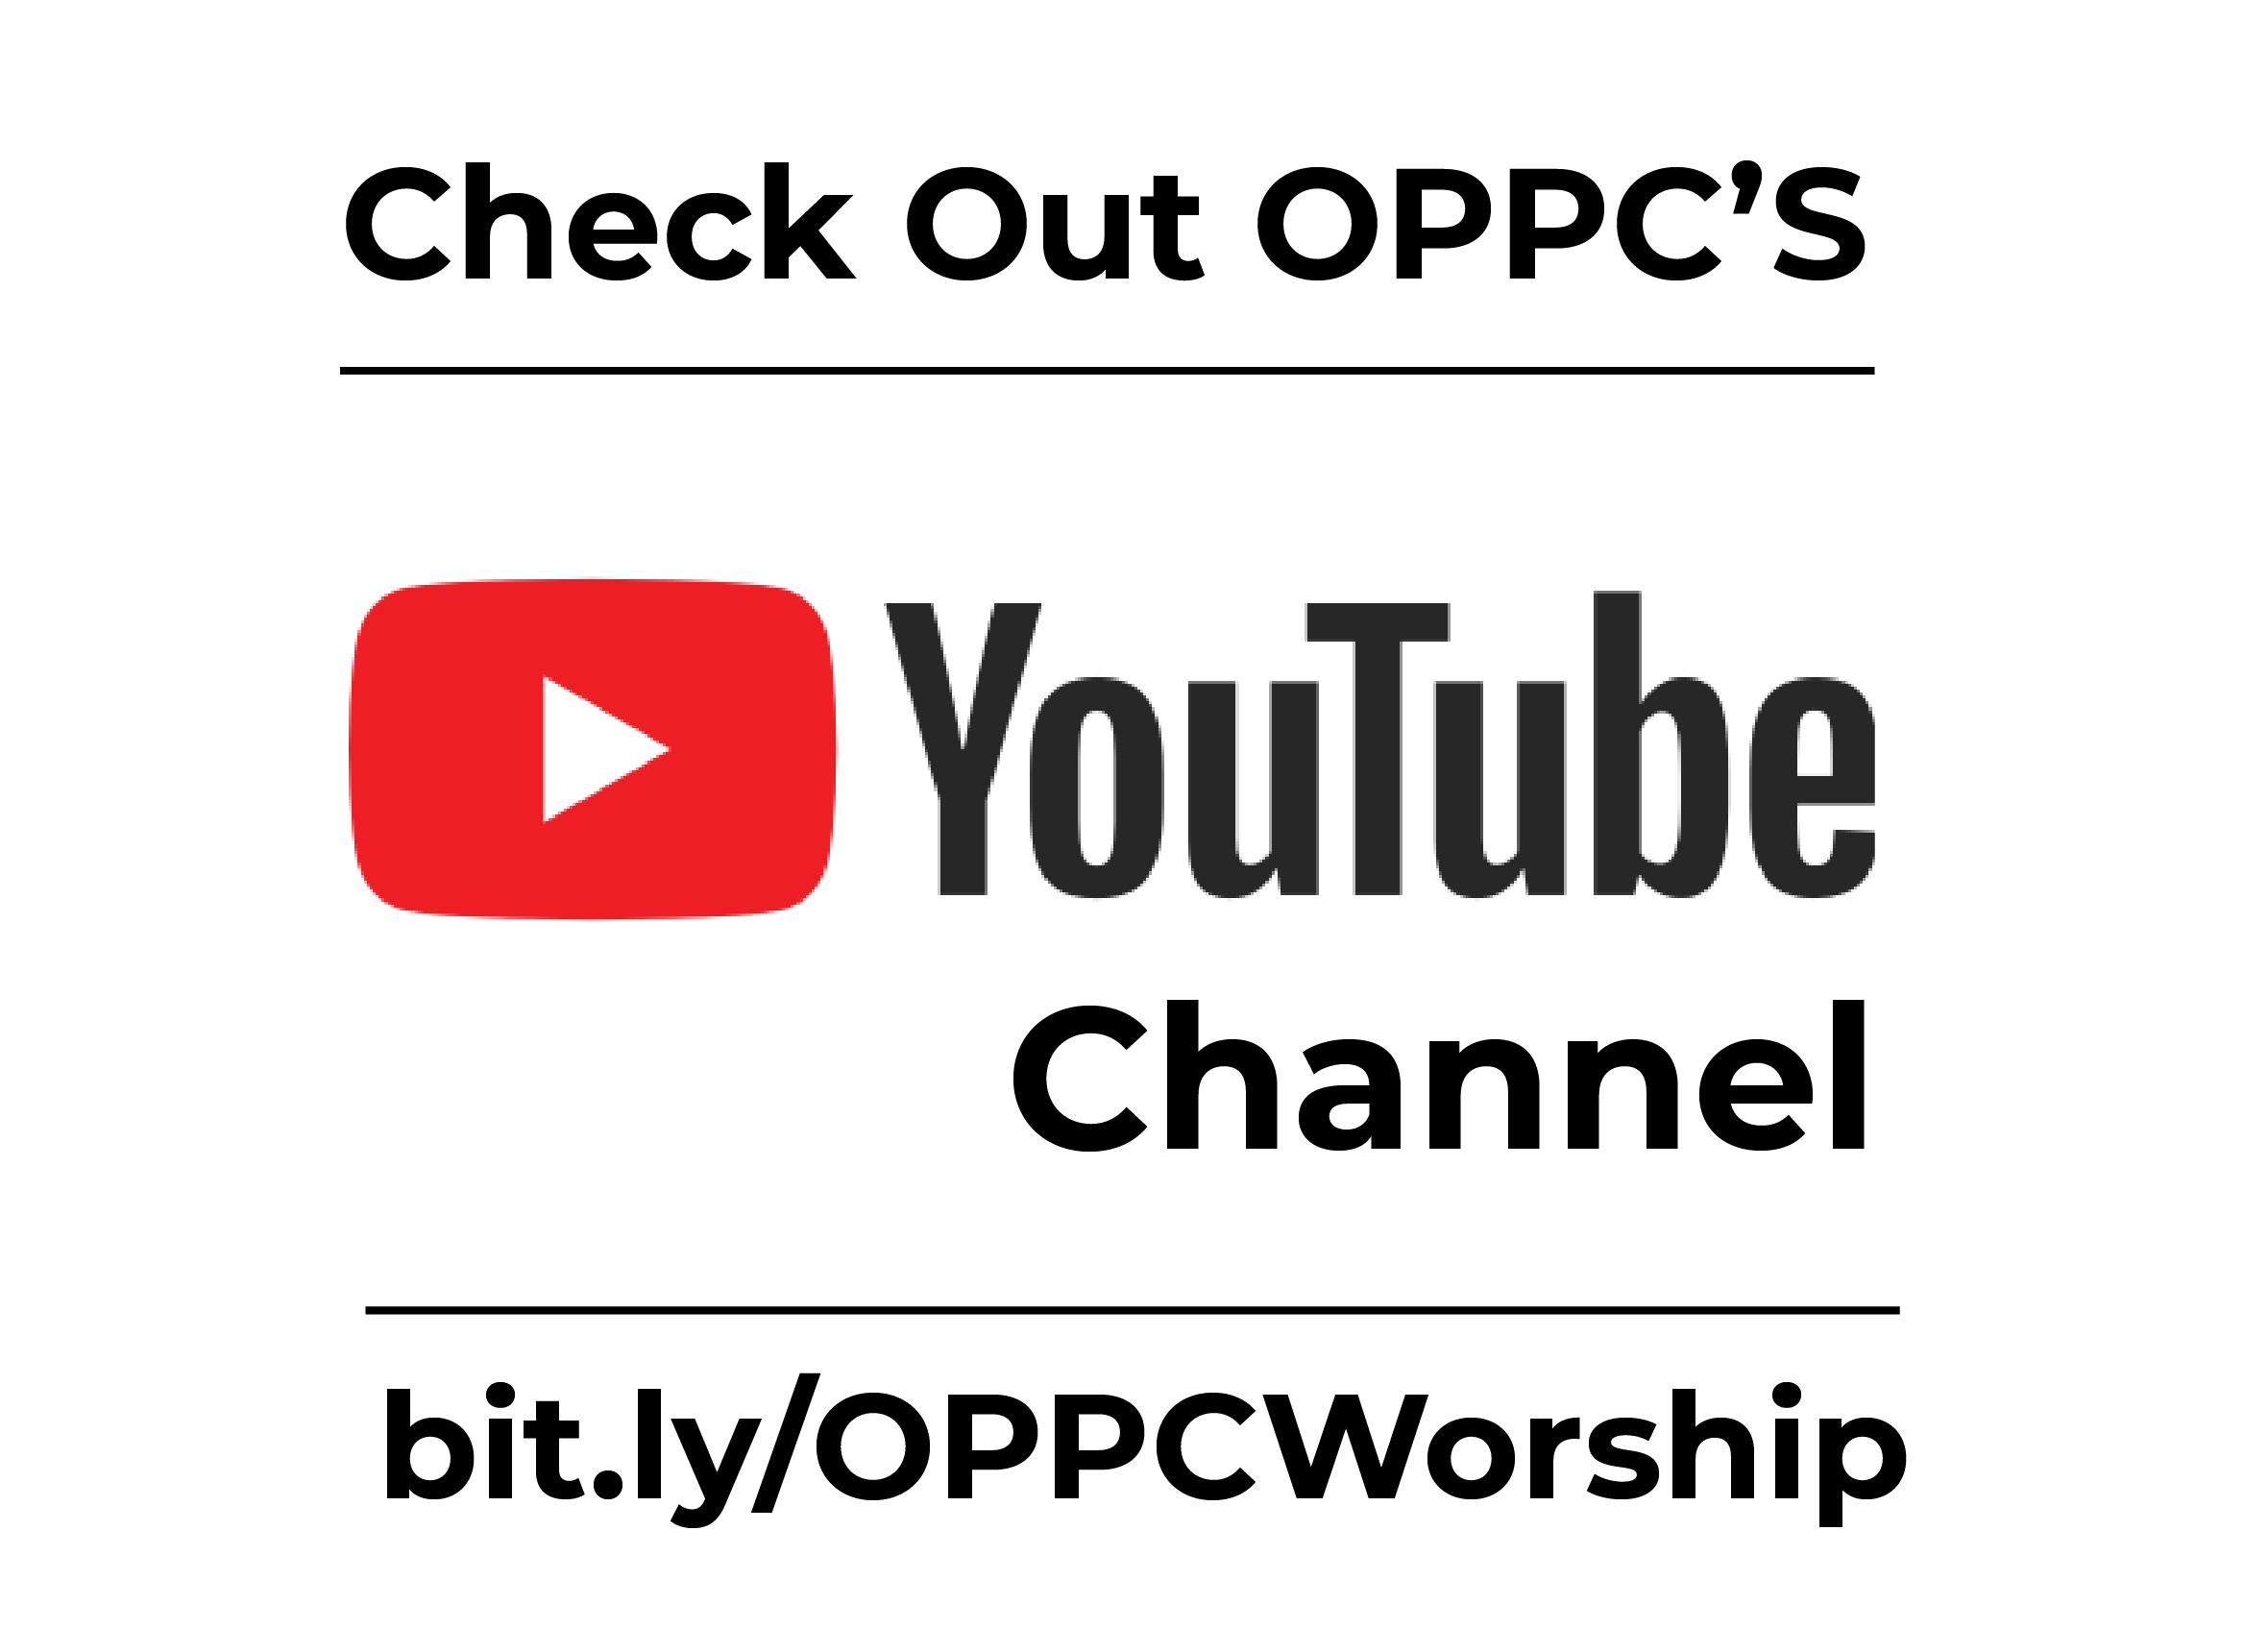 OPPC's YouTube Link bit.ly/OPPCWorship